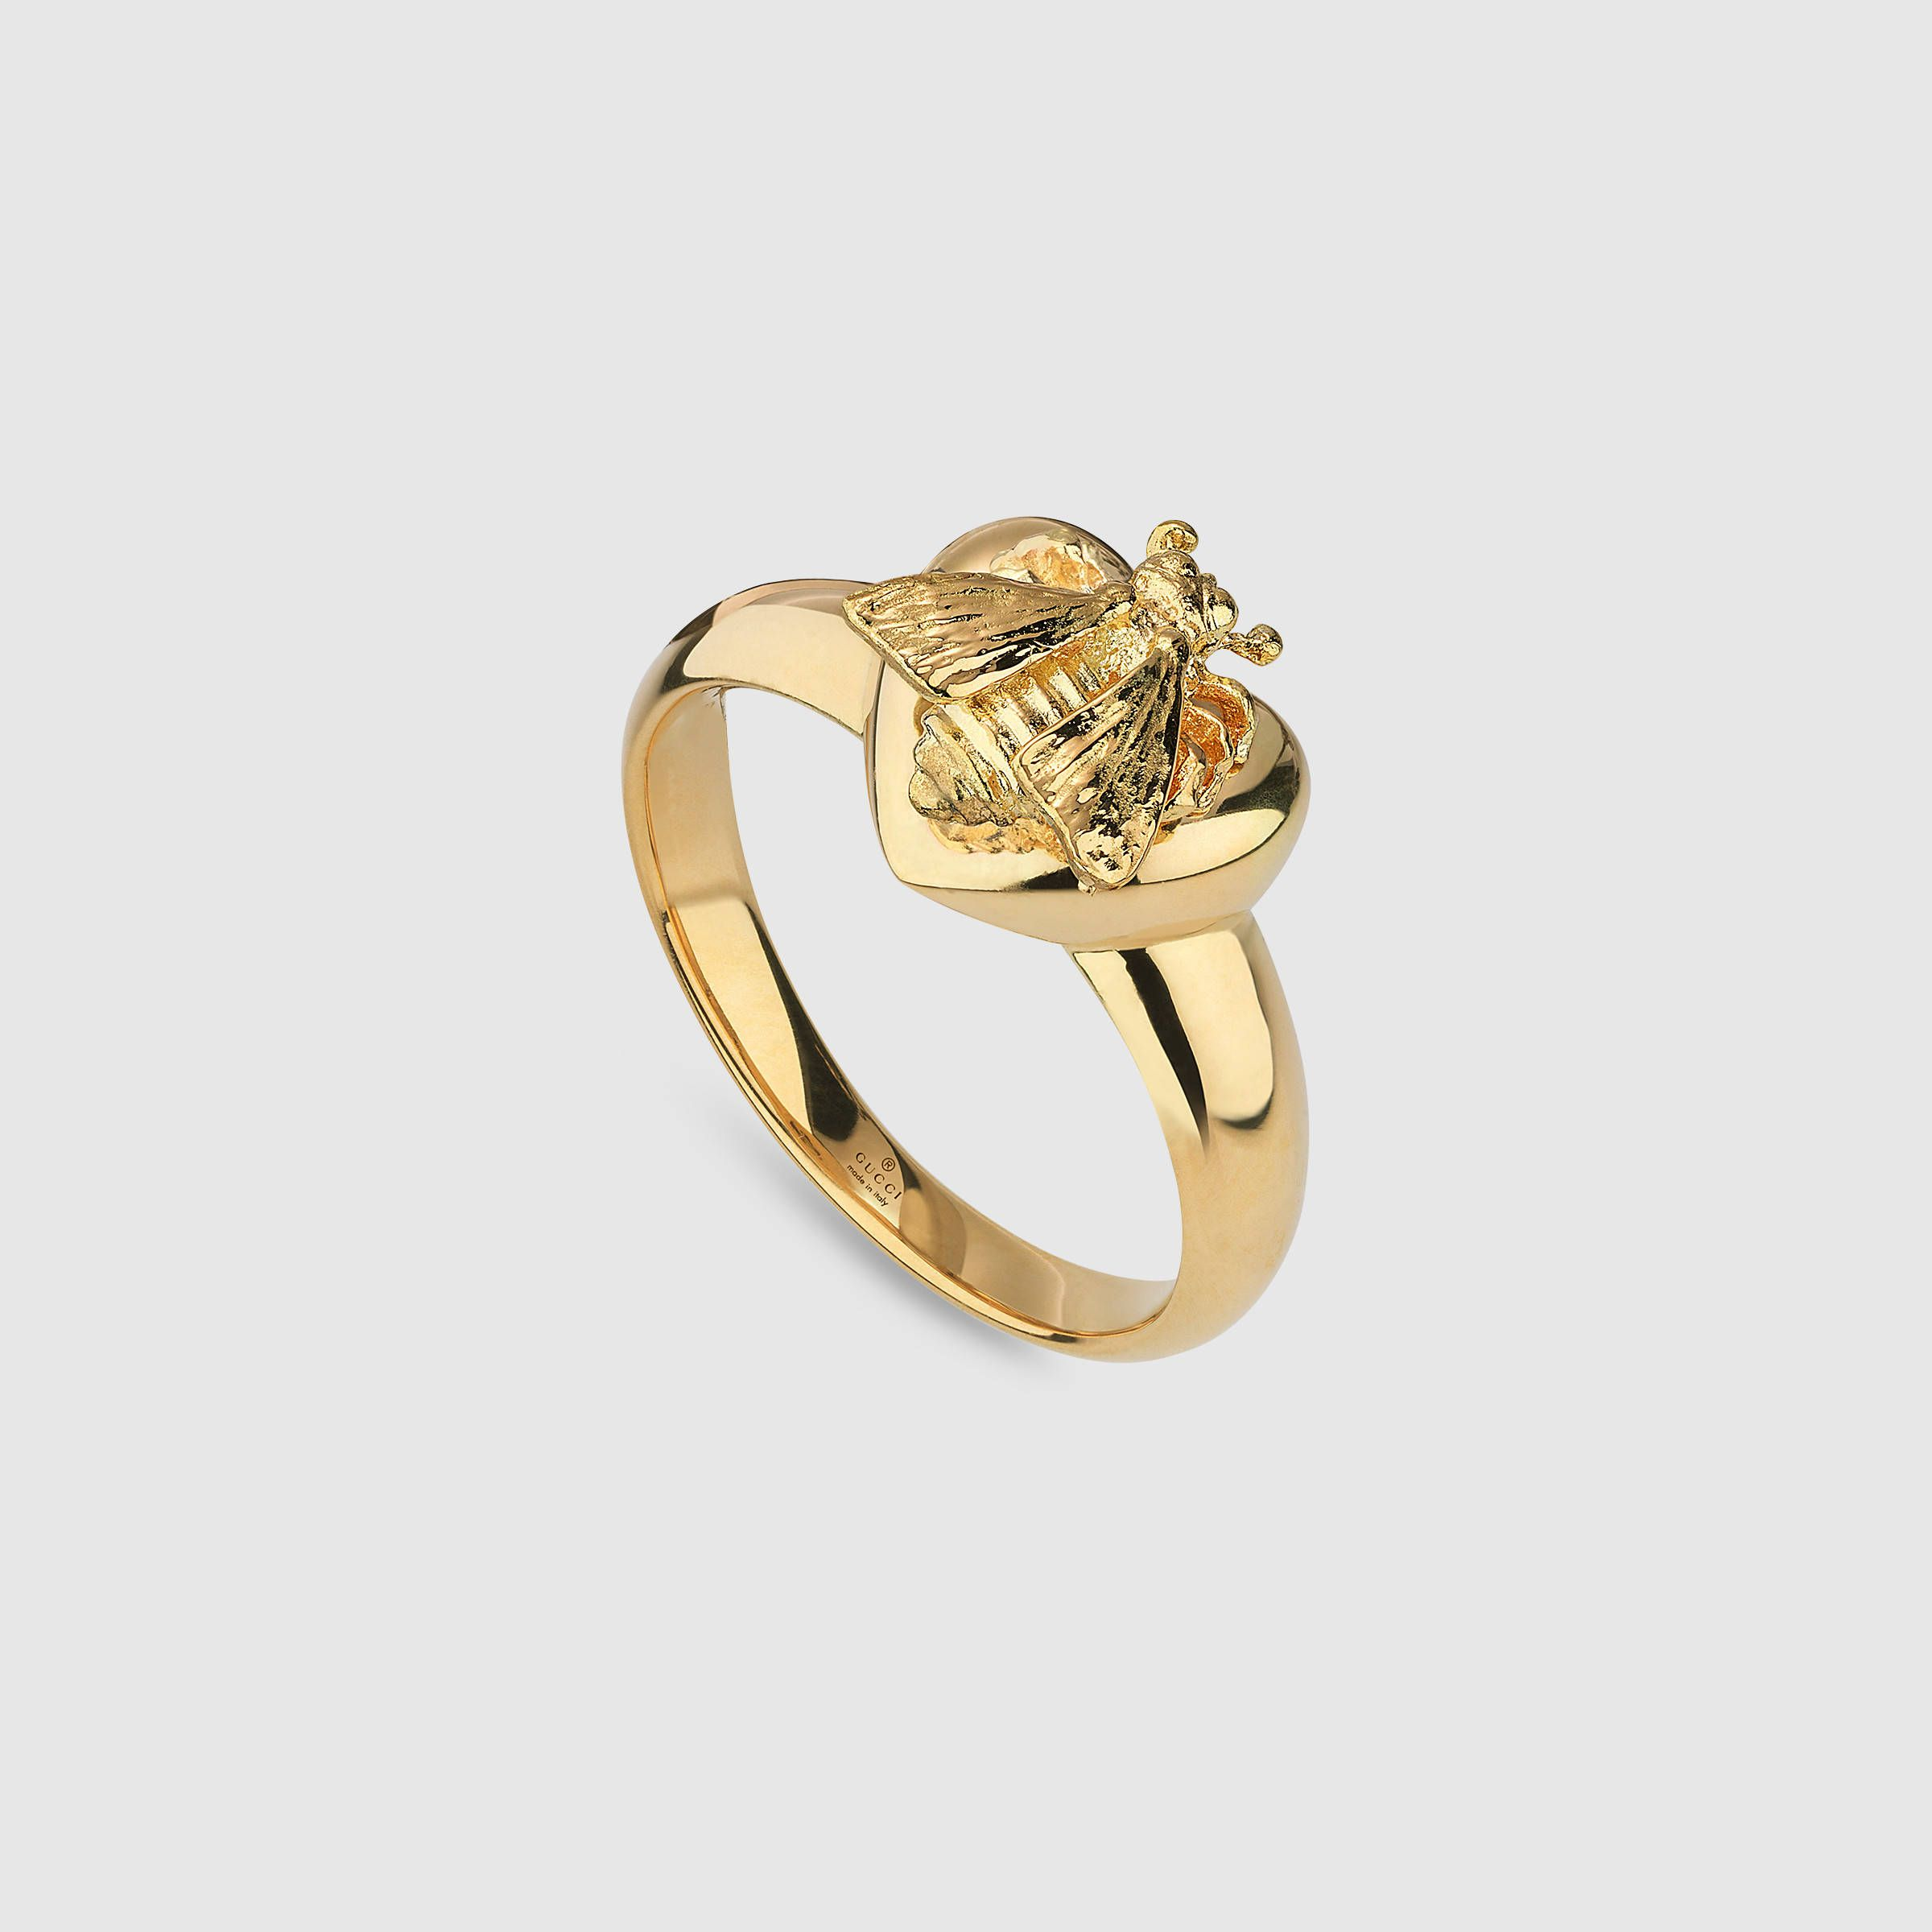 ae204a6d2 gucci Le Marché des Merveilles ring | jewelry | Gucci jewelry ...